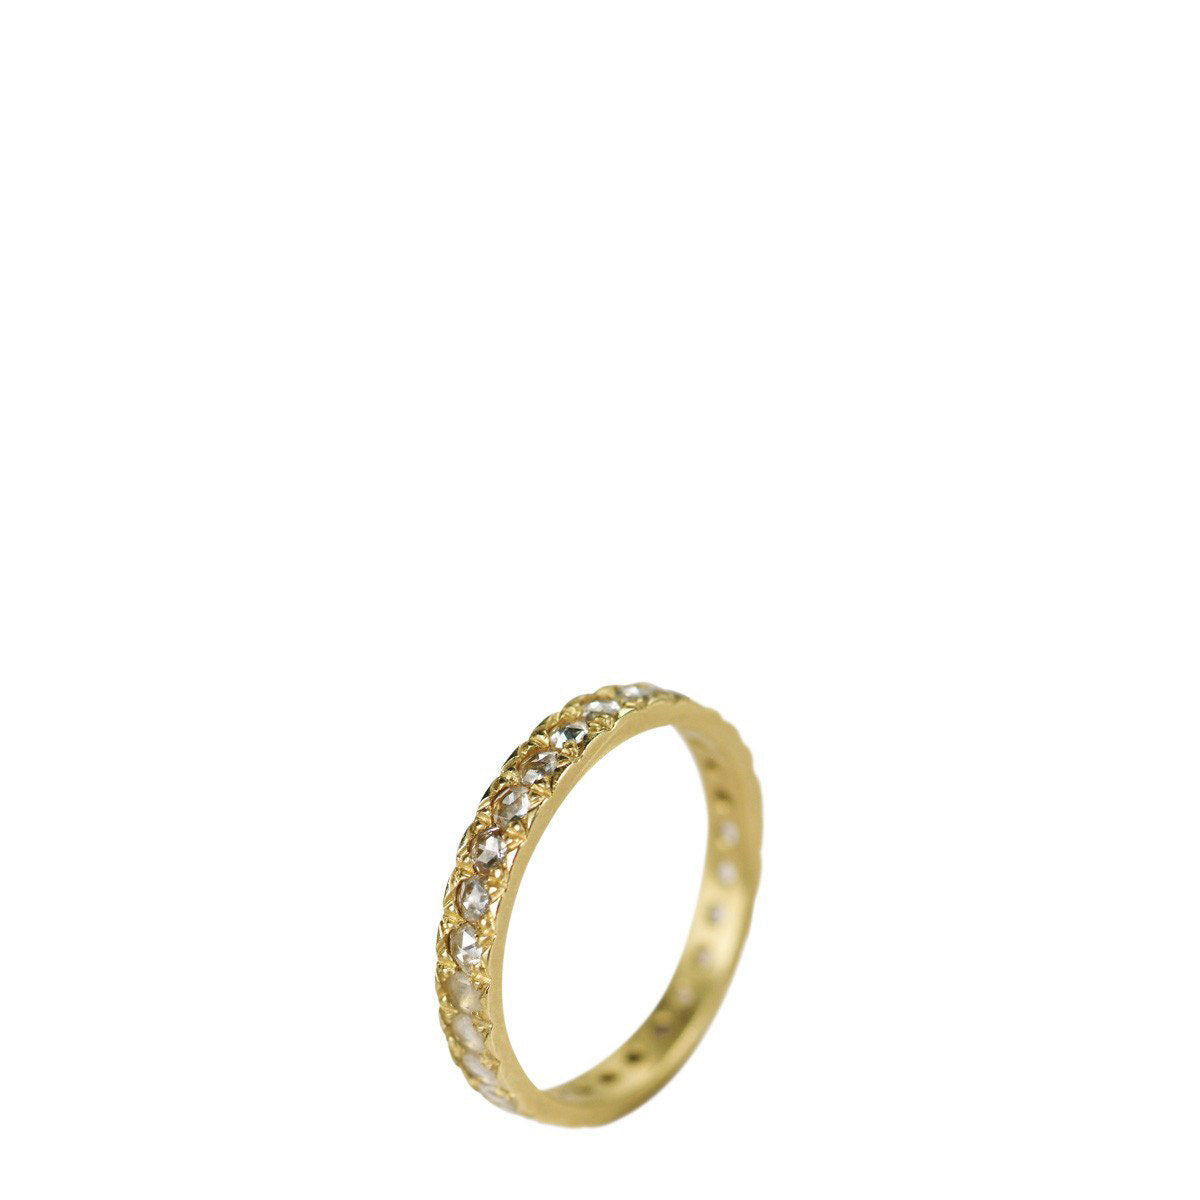 18K Gold 3mm Band with 2mm Indian Diamonds